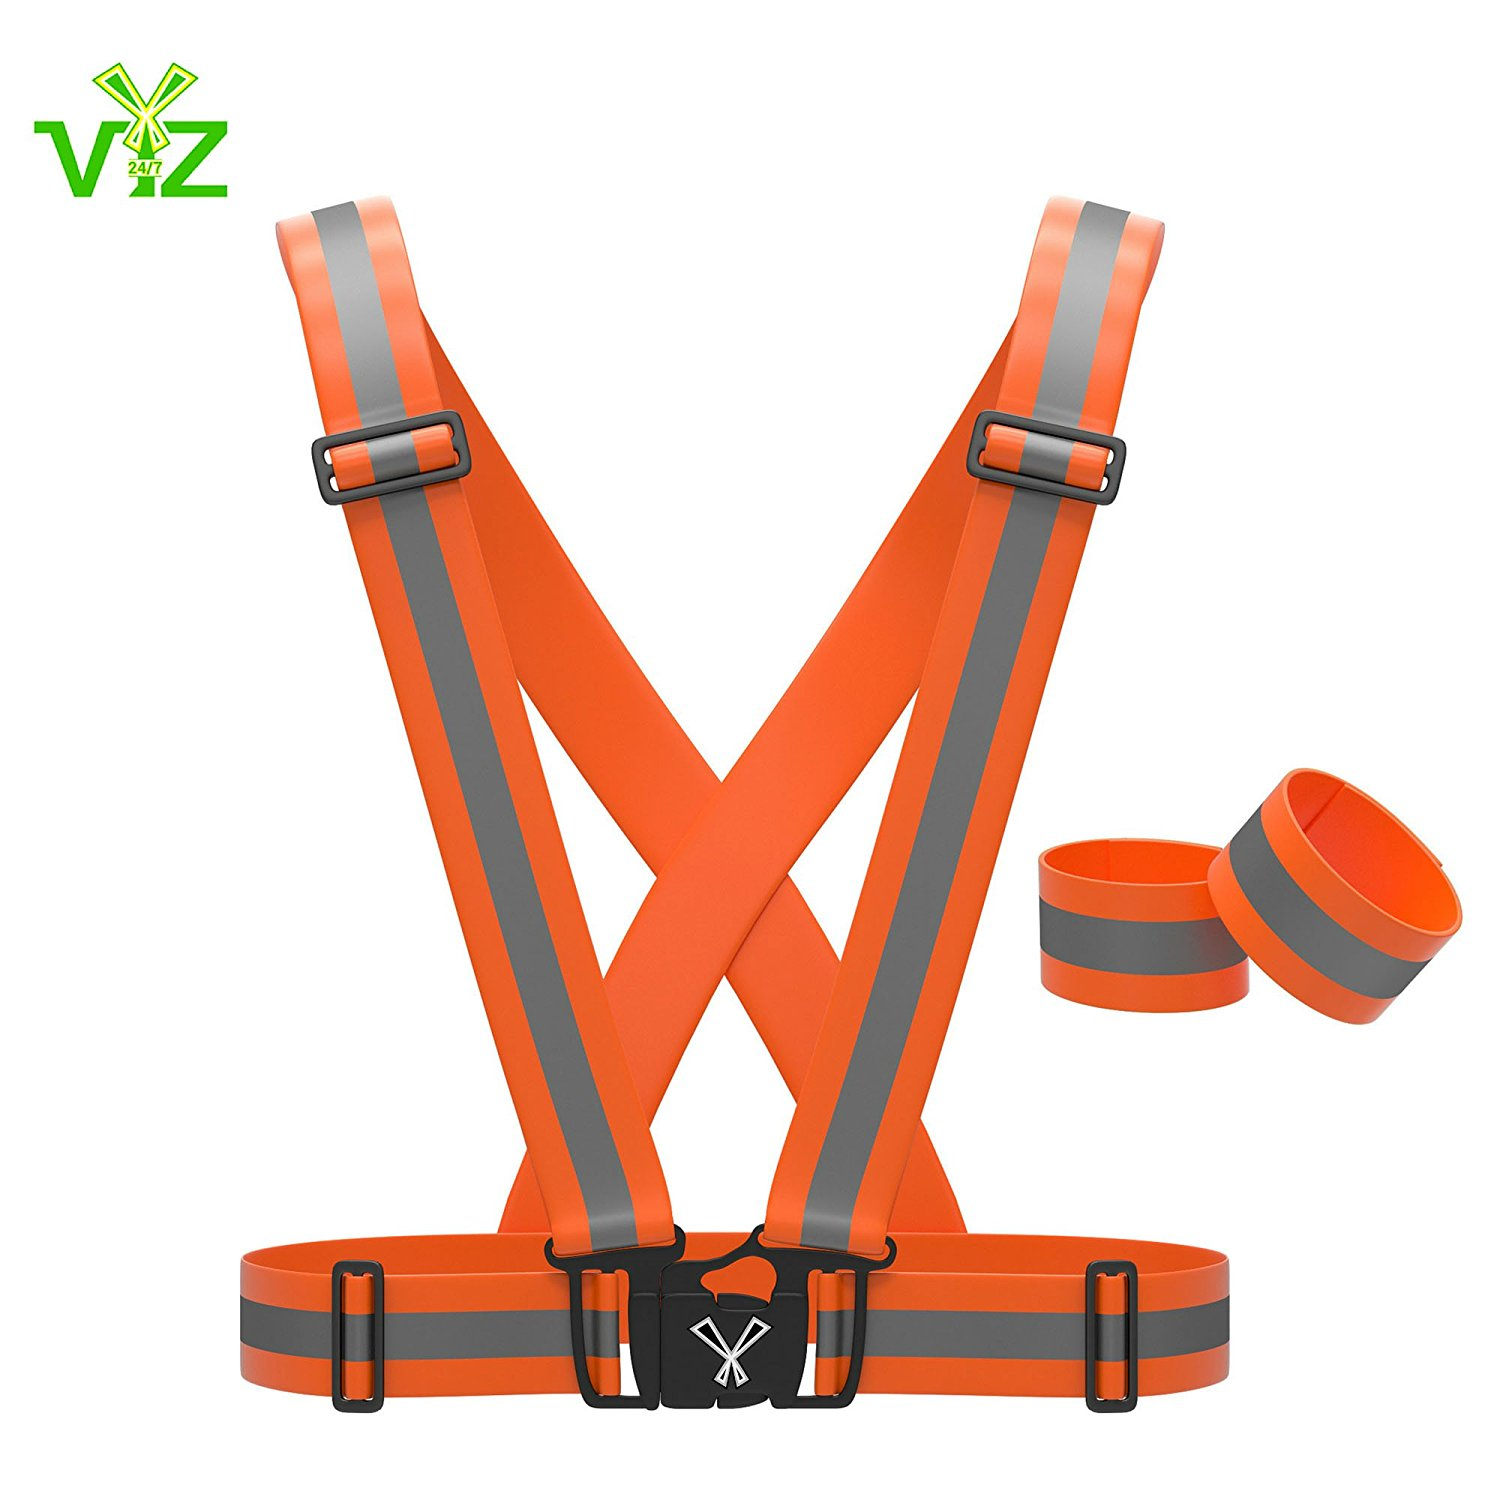 247 Viz Reflective Vest with Hi Vis Bands, Fully Adjustable & Multi-purpose: Running, Cycling, Motorcycle Safety, Dog Walking - High Visibility Neon Green, Orange & Pink By